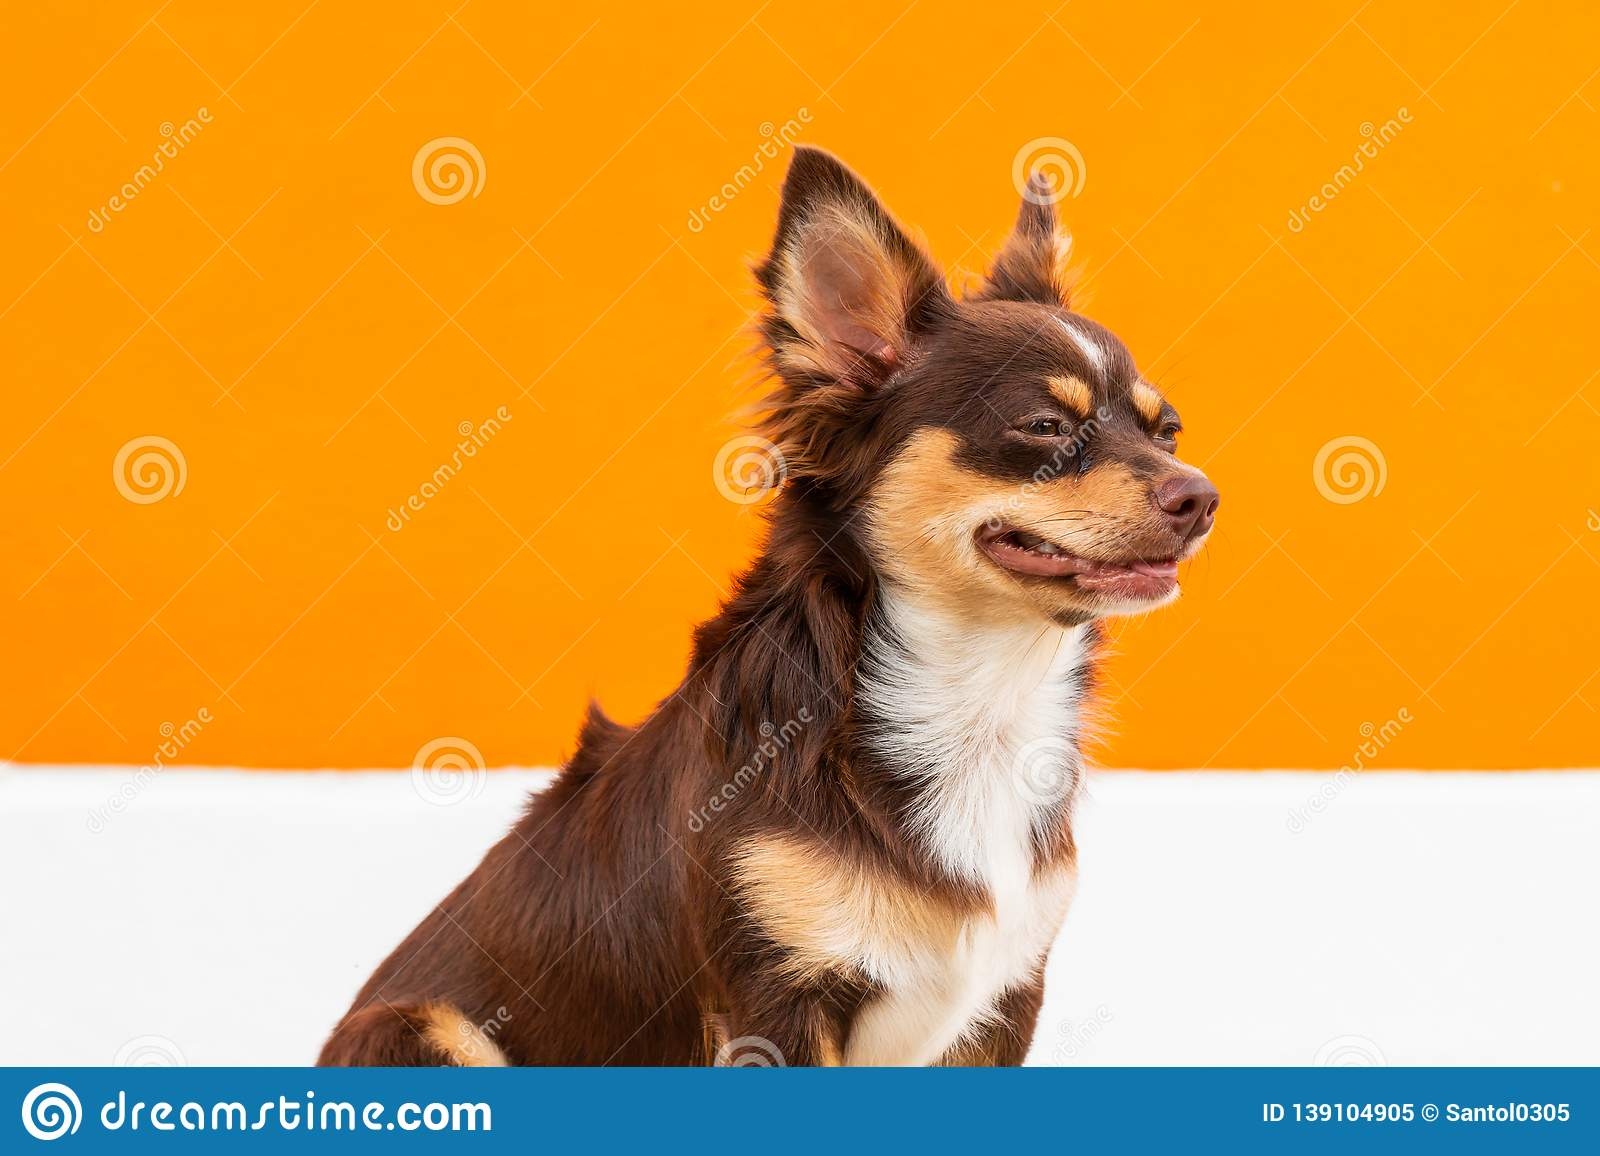 Cute brown chihuahua dog sitting on orange and white background